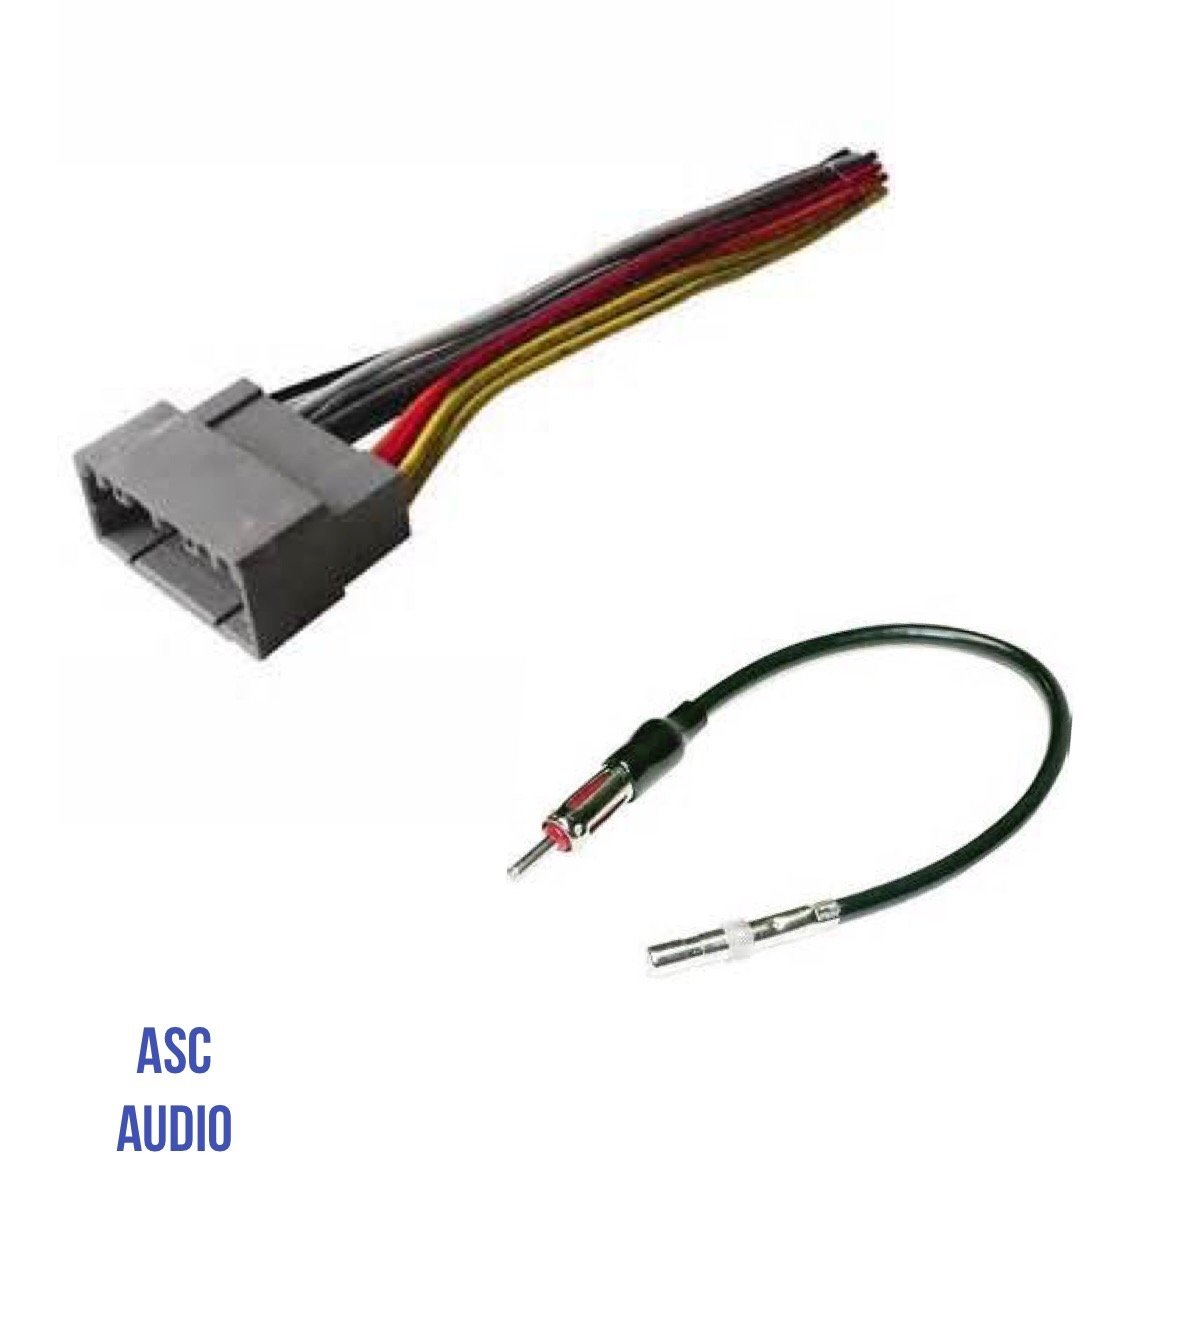 Buy Asc Audio Car Stereo Wire Harness And Antenna Adapter For Some Aftermarket Wiring To Install An Radio Select